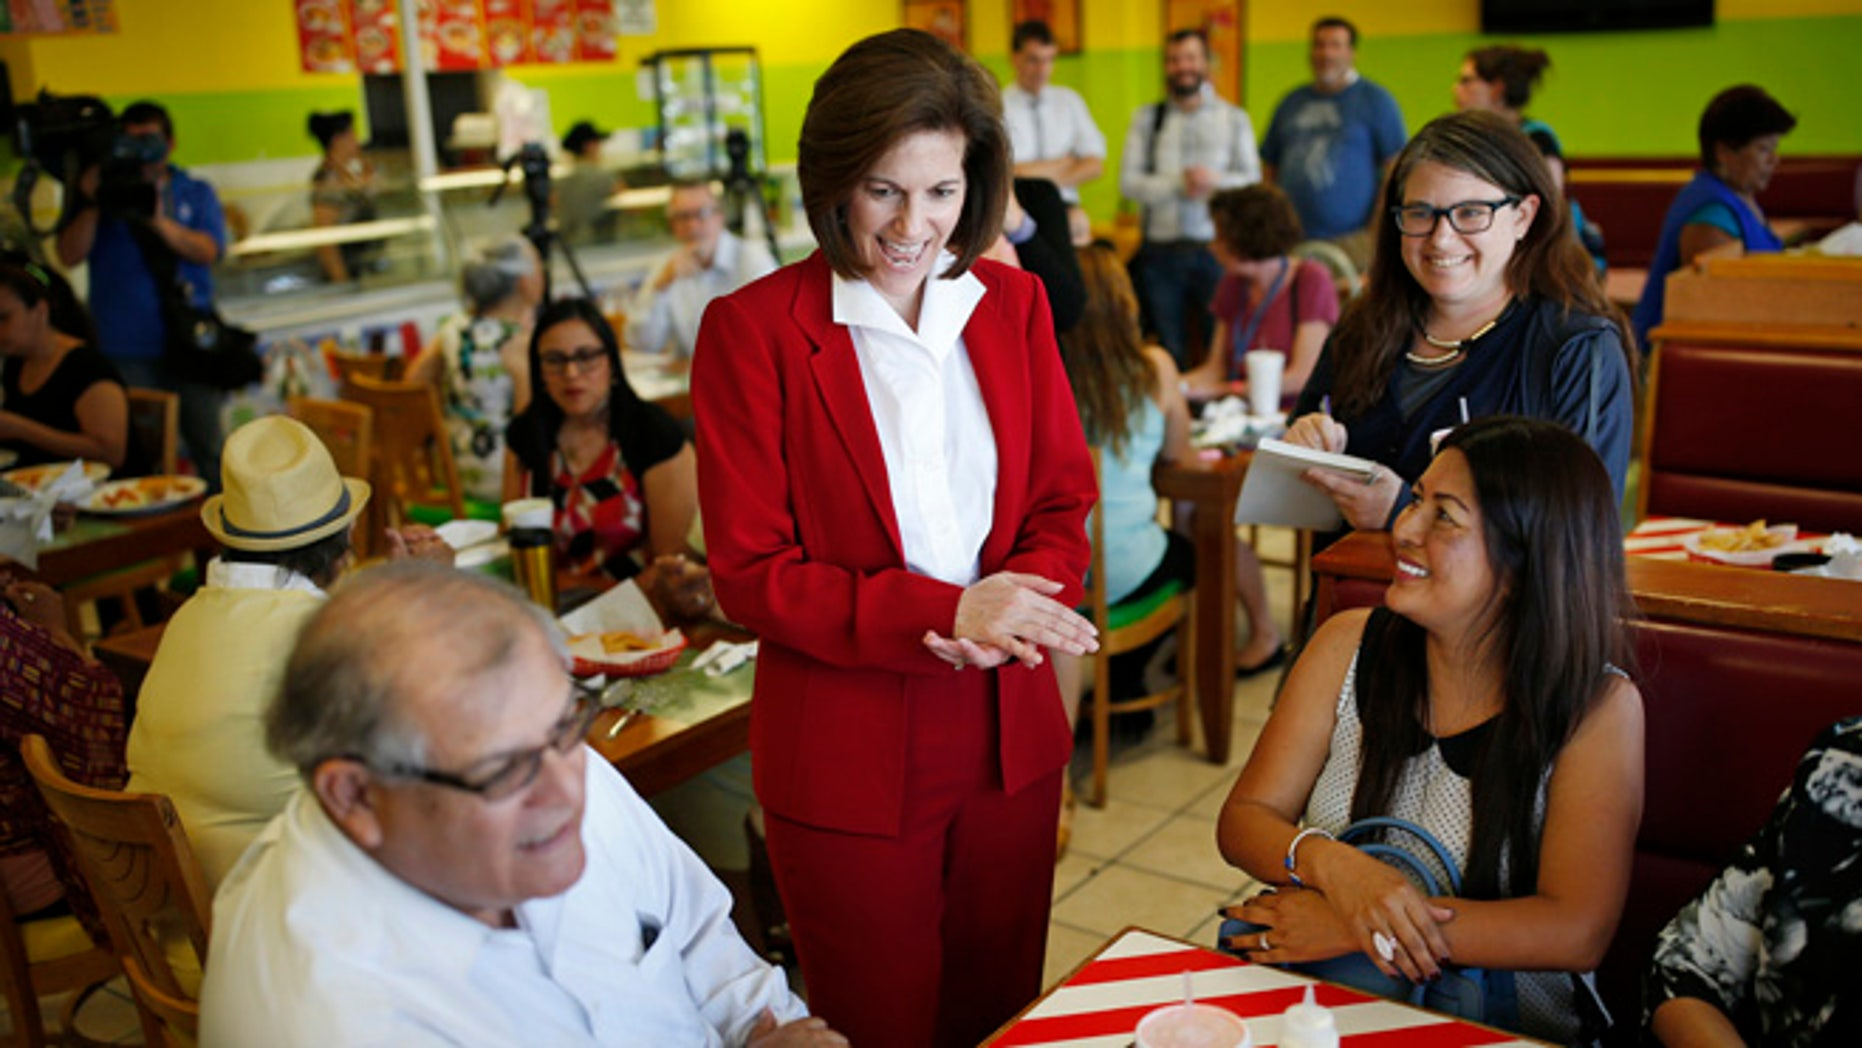 In this May 31, 2016, photo, U.S. Senate candidate Catherine Cortez Masto, center, laughs while speaking with people at a campaign event at a restaurant in Las Vegas. A battle royal is shaping up in Nevada over the open Senate seat created by the retirement of Minority Leader Harry Reid of Nevada. A former state attorney general, Masto, would be the first Latina ever to serve in the U.S. Senate. (AP Photo/John Locher)